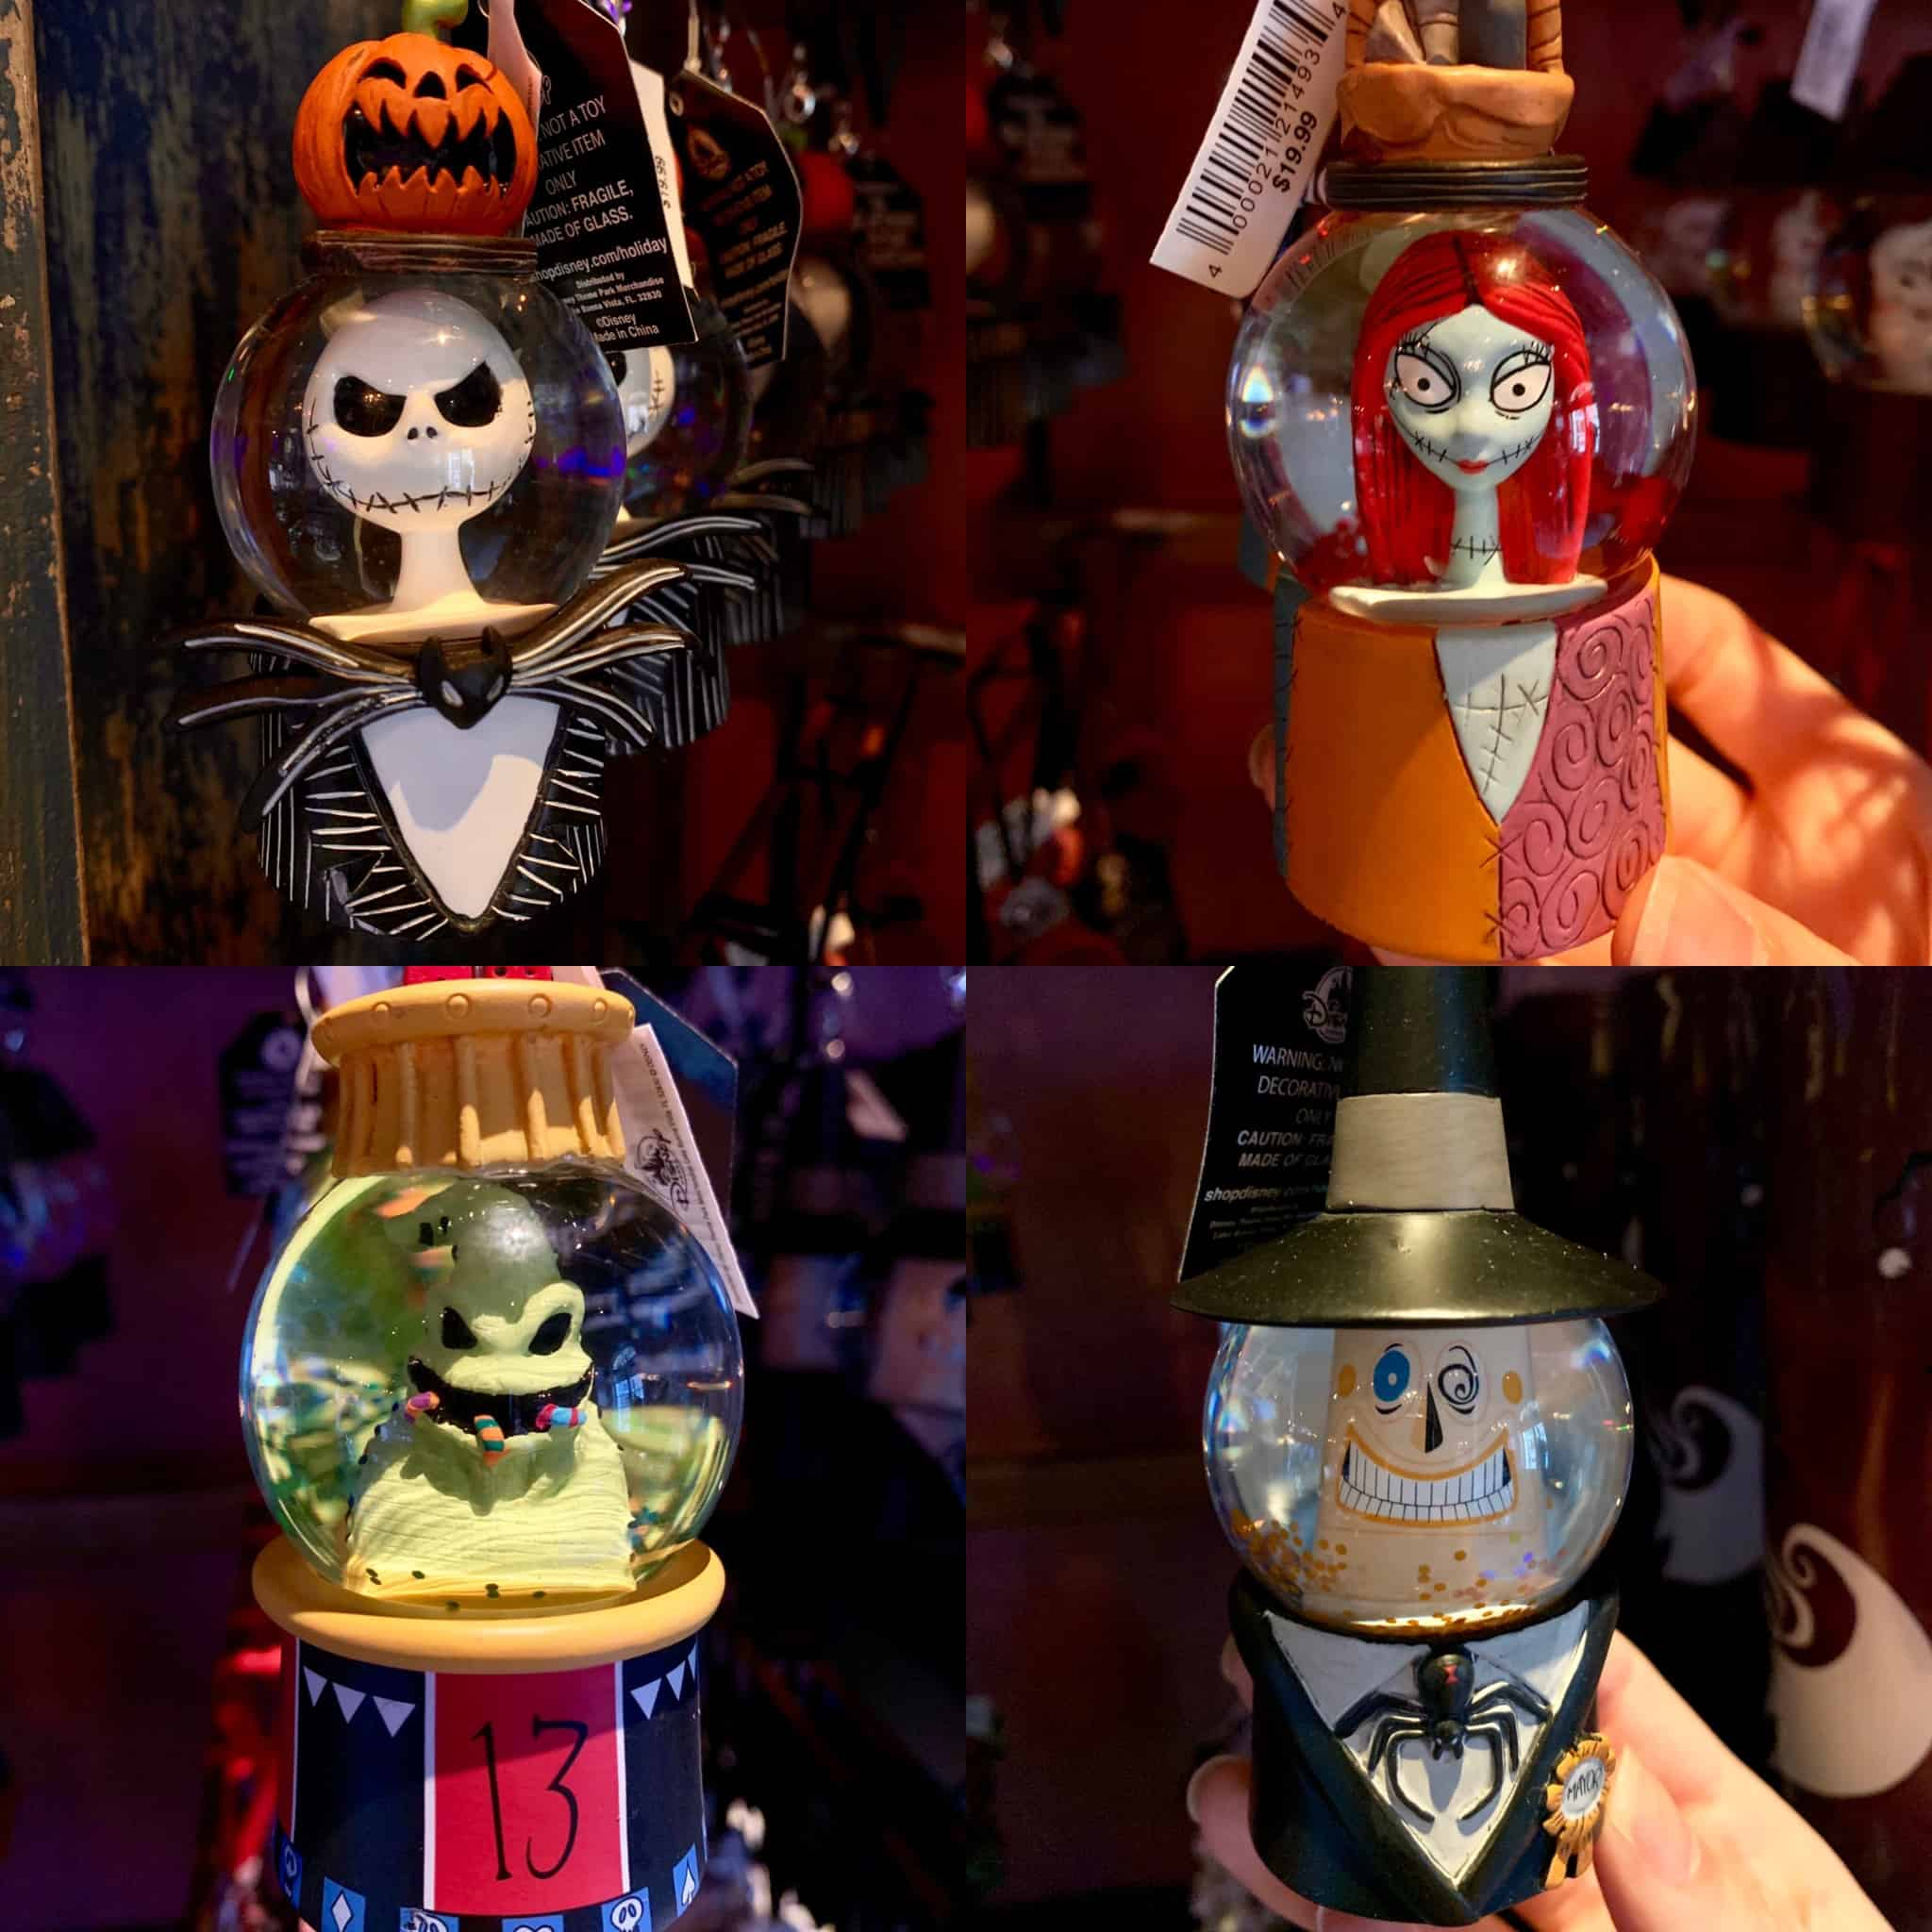 Photos New The Nightmare Before Christmas Snow Globe Ornaments Debut At Disneyland Park Wdw News Today